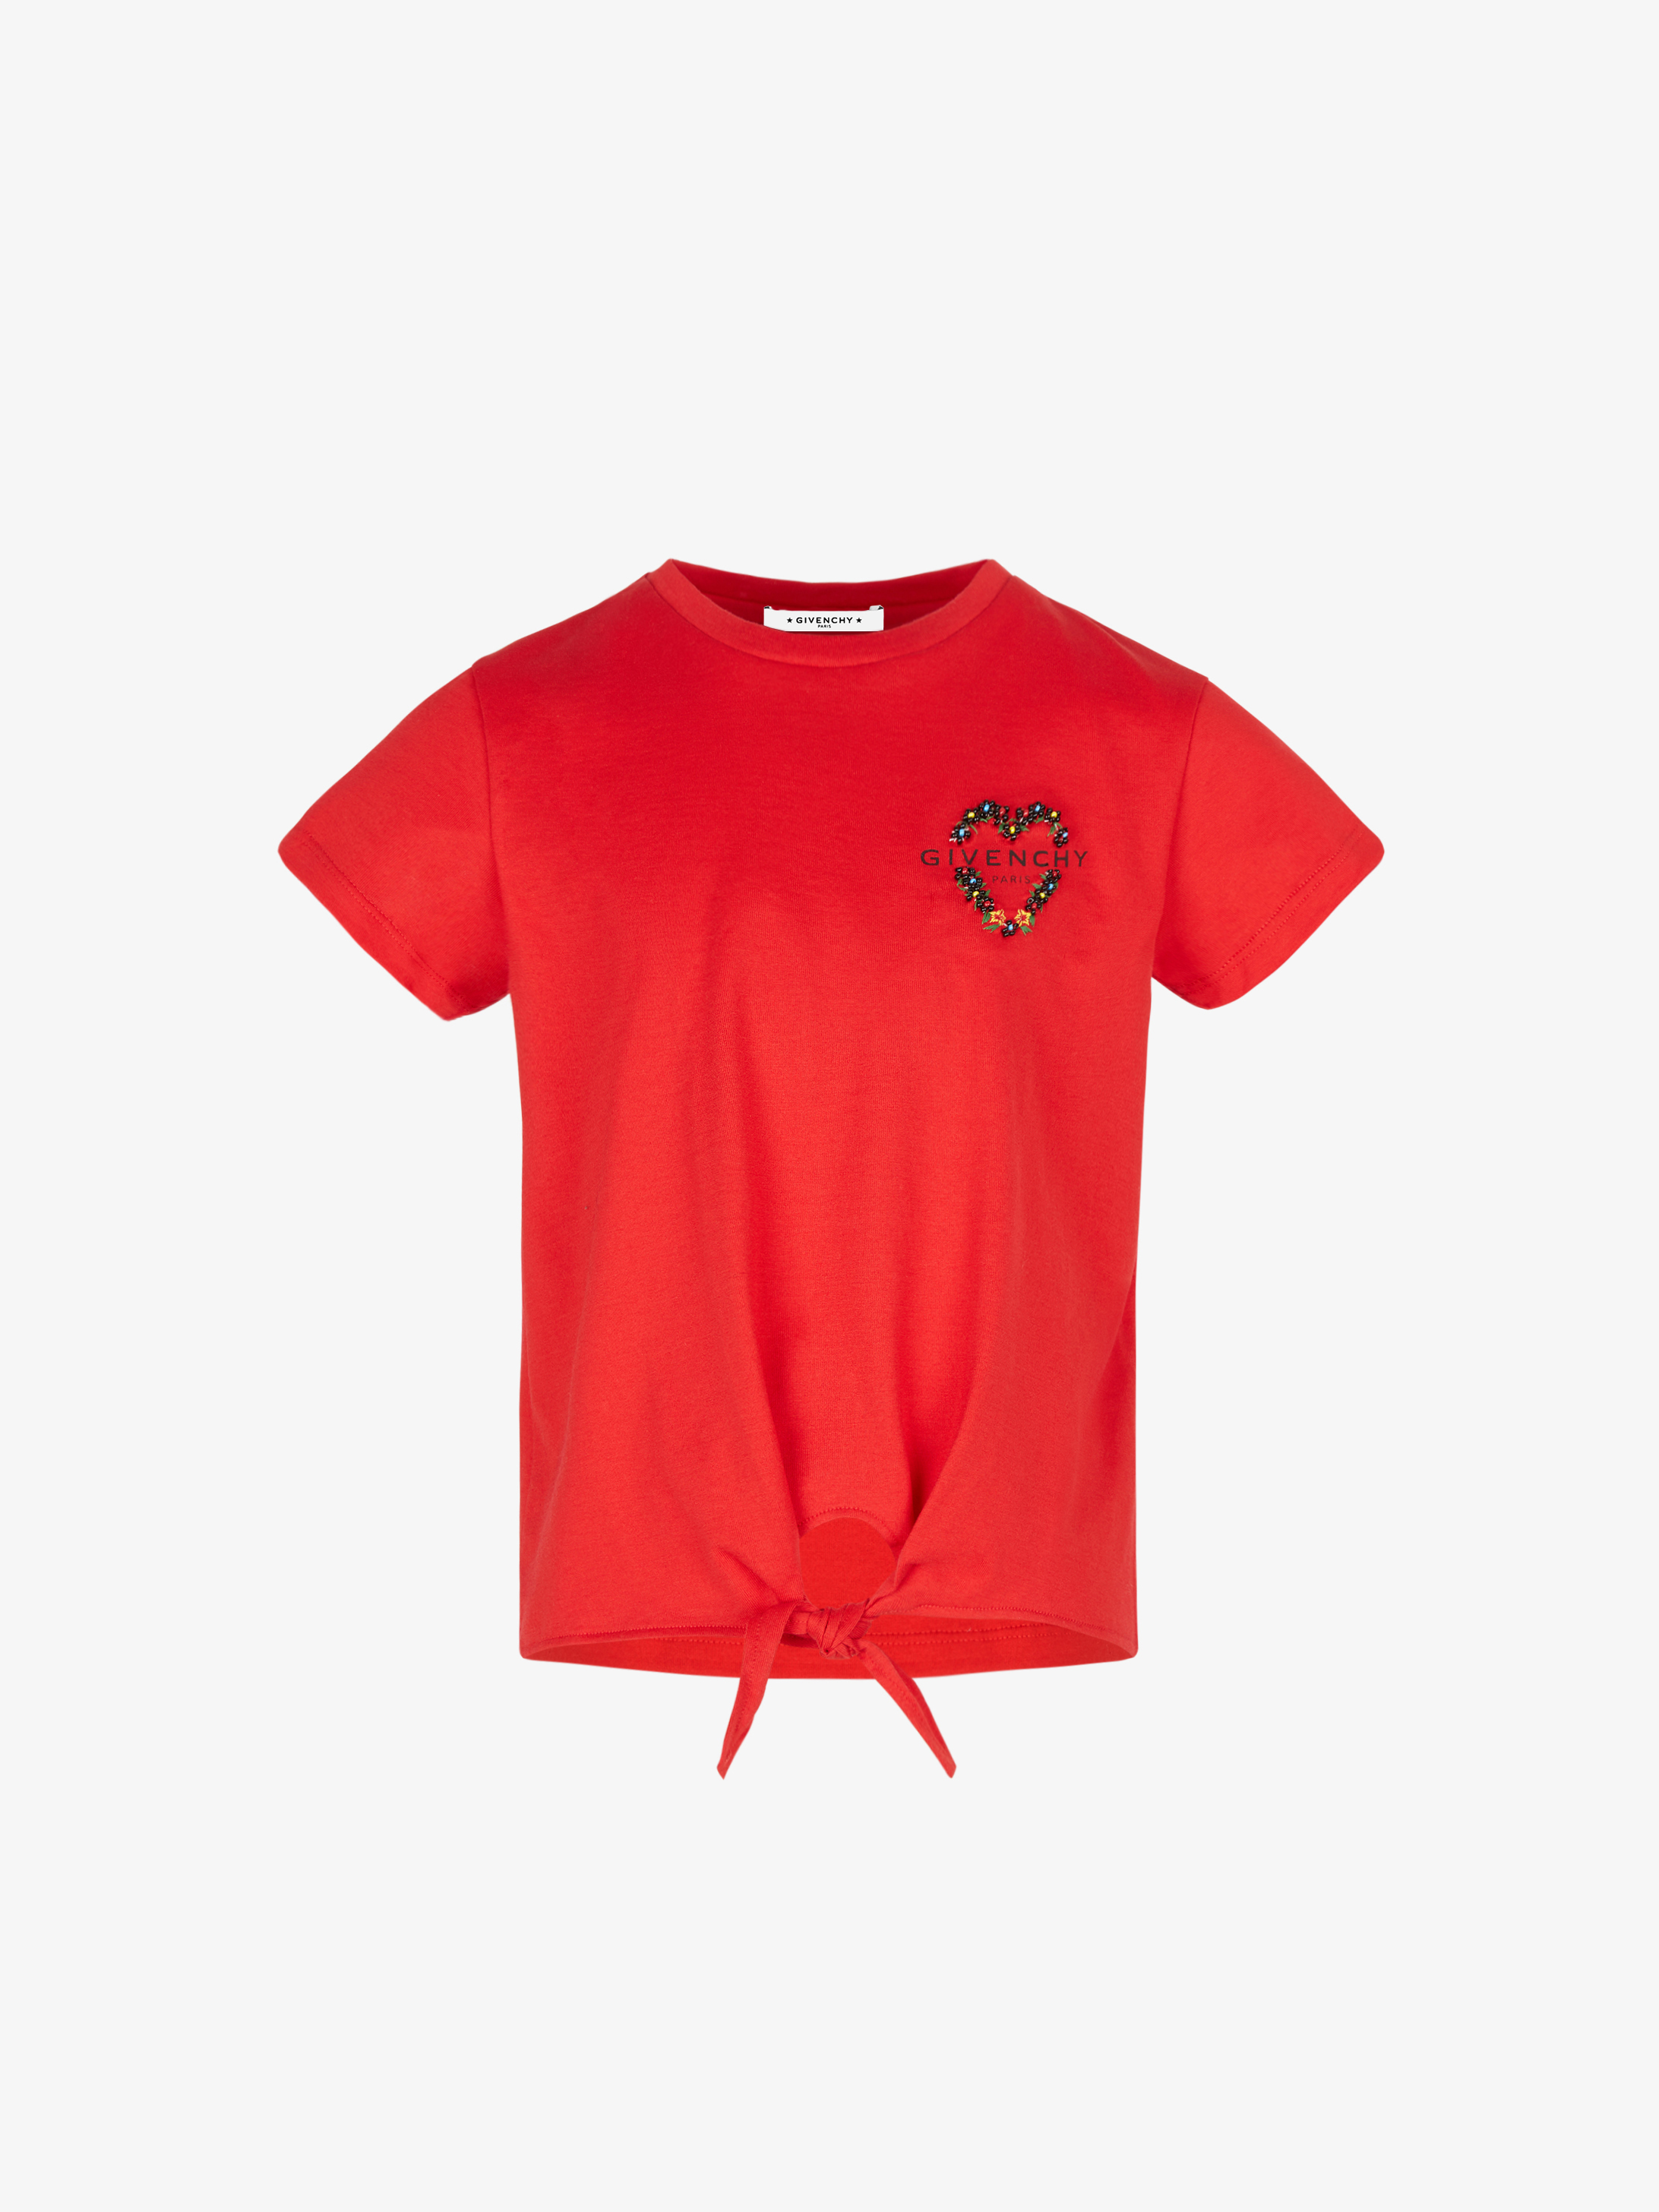 GIVENCHY floral embroidered tie t-shirt